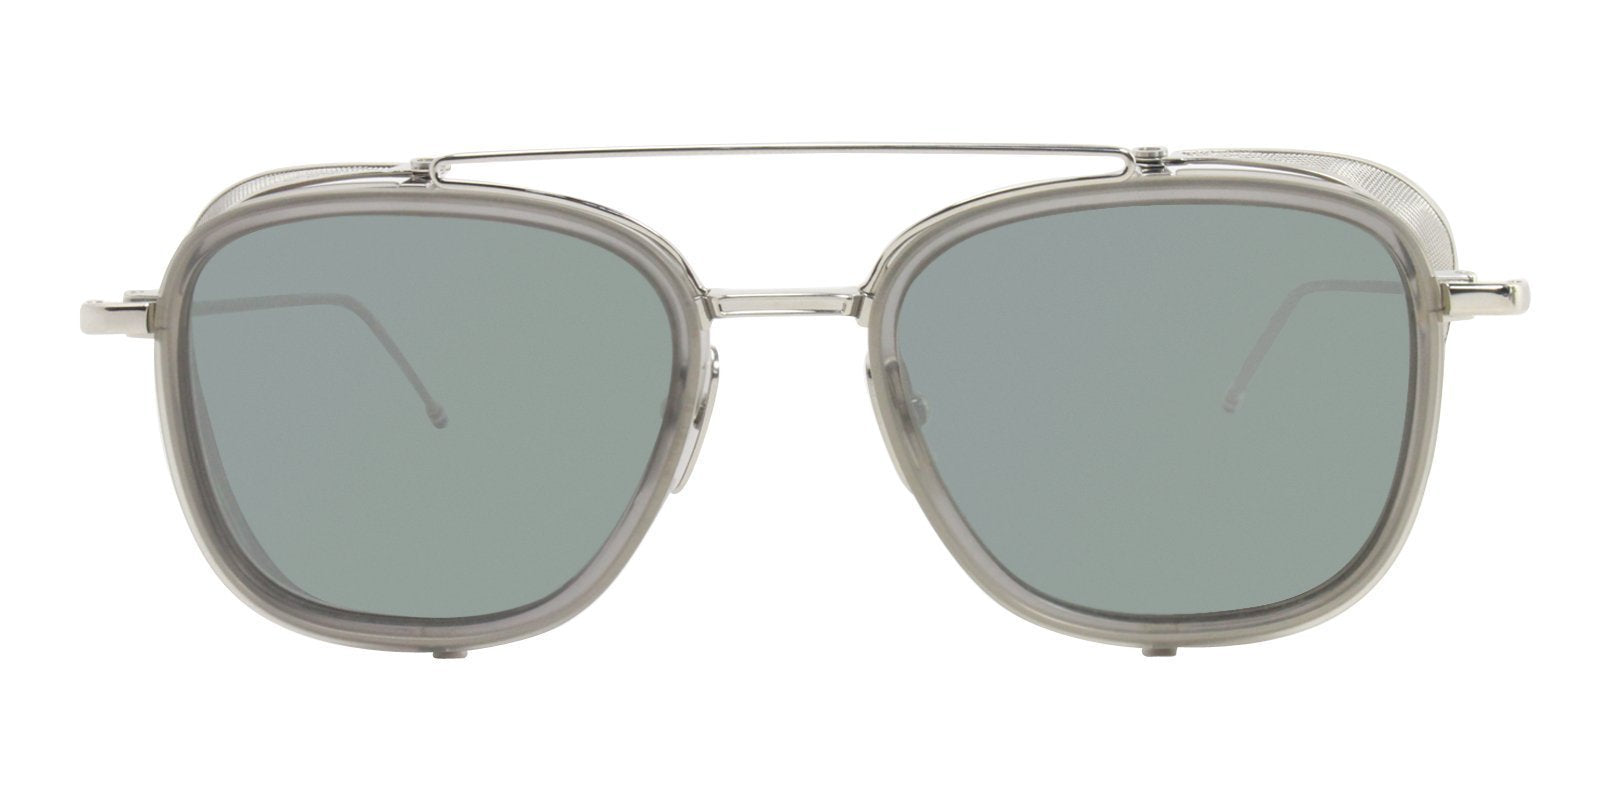 Thom Browne - TB-808 Gray Oval Men Sunglasses - 51mm-Sunglasses-Designer Eyes